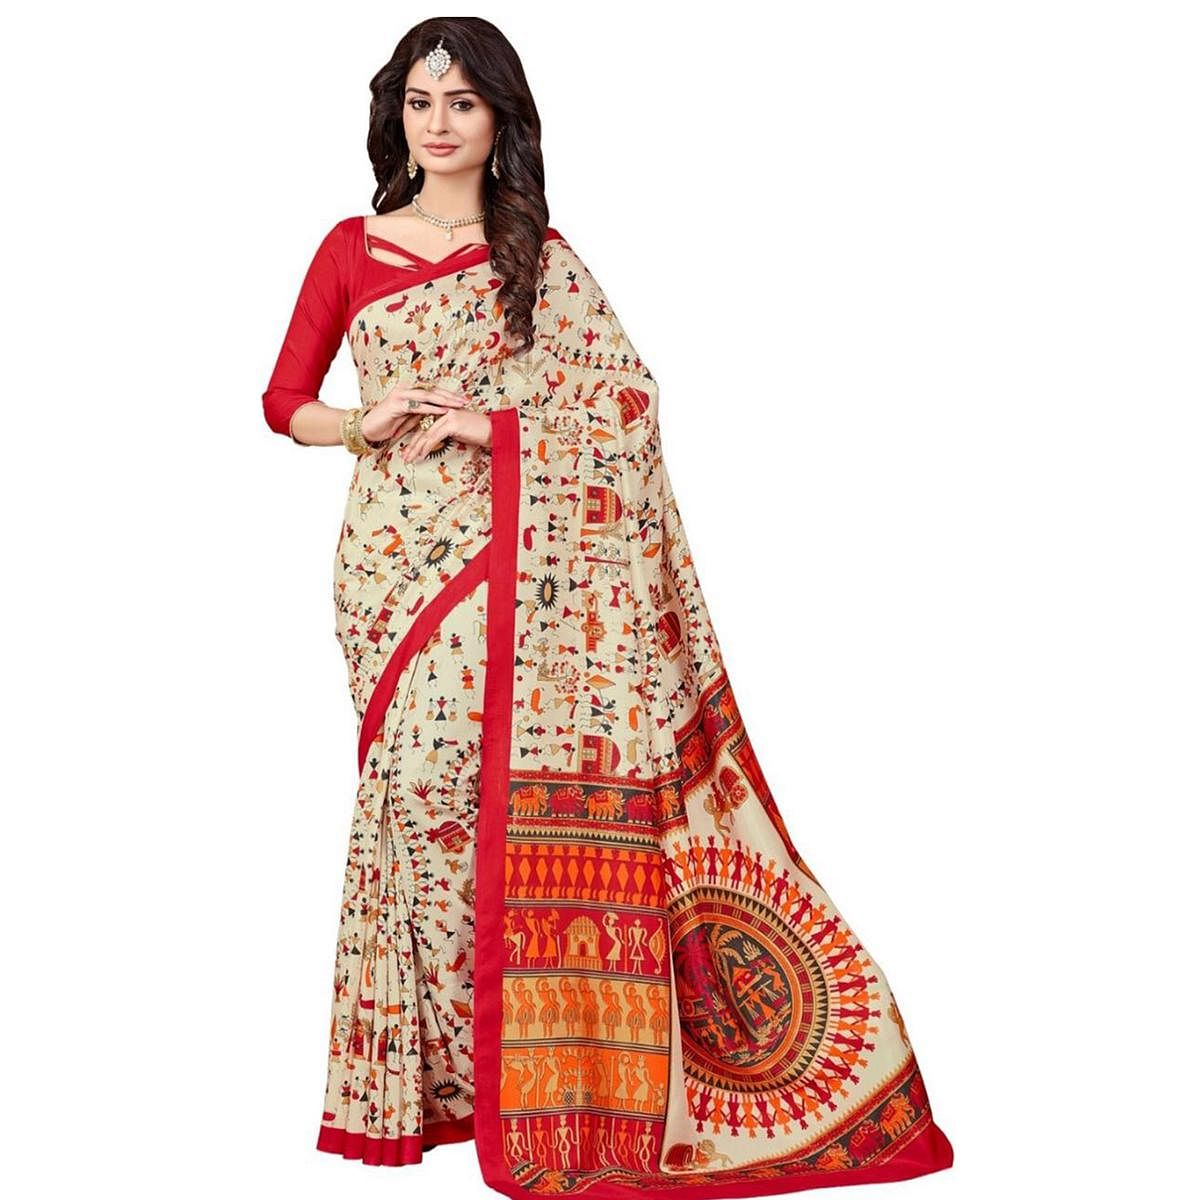 Ethnic Beige Colored Warli Printed Bhagalpuri Silk Saree